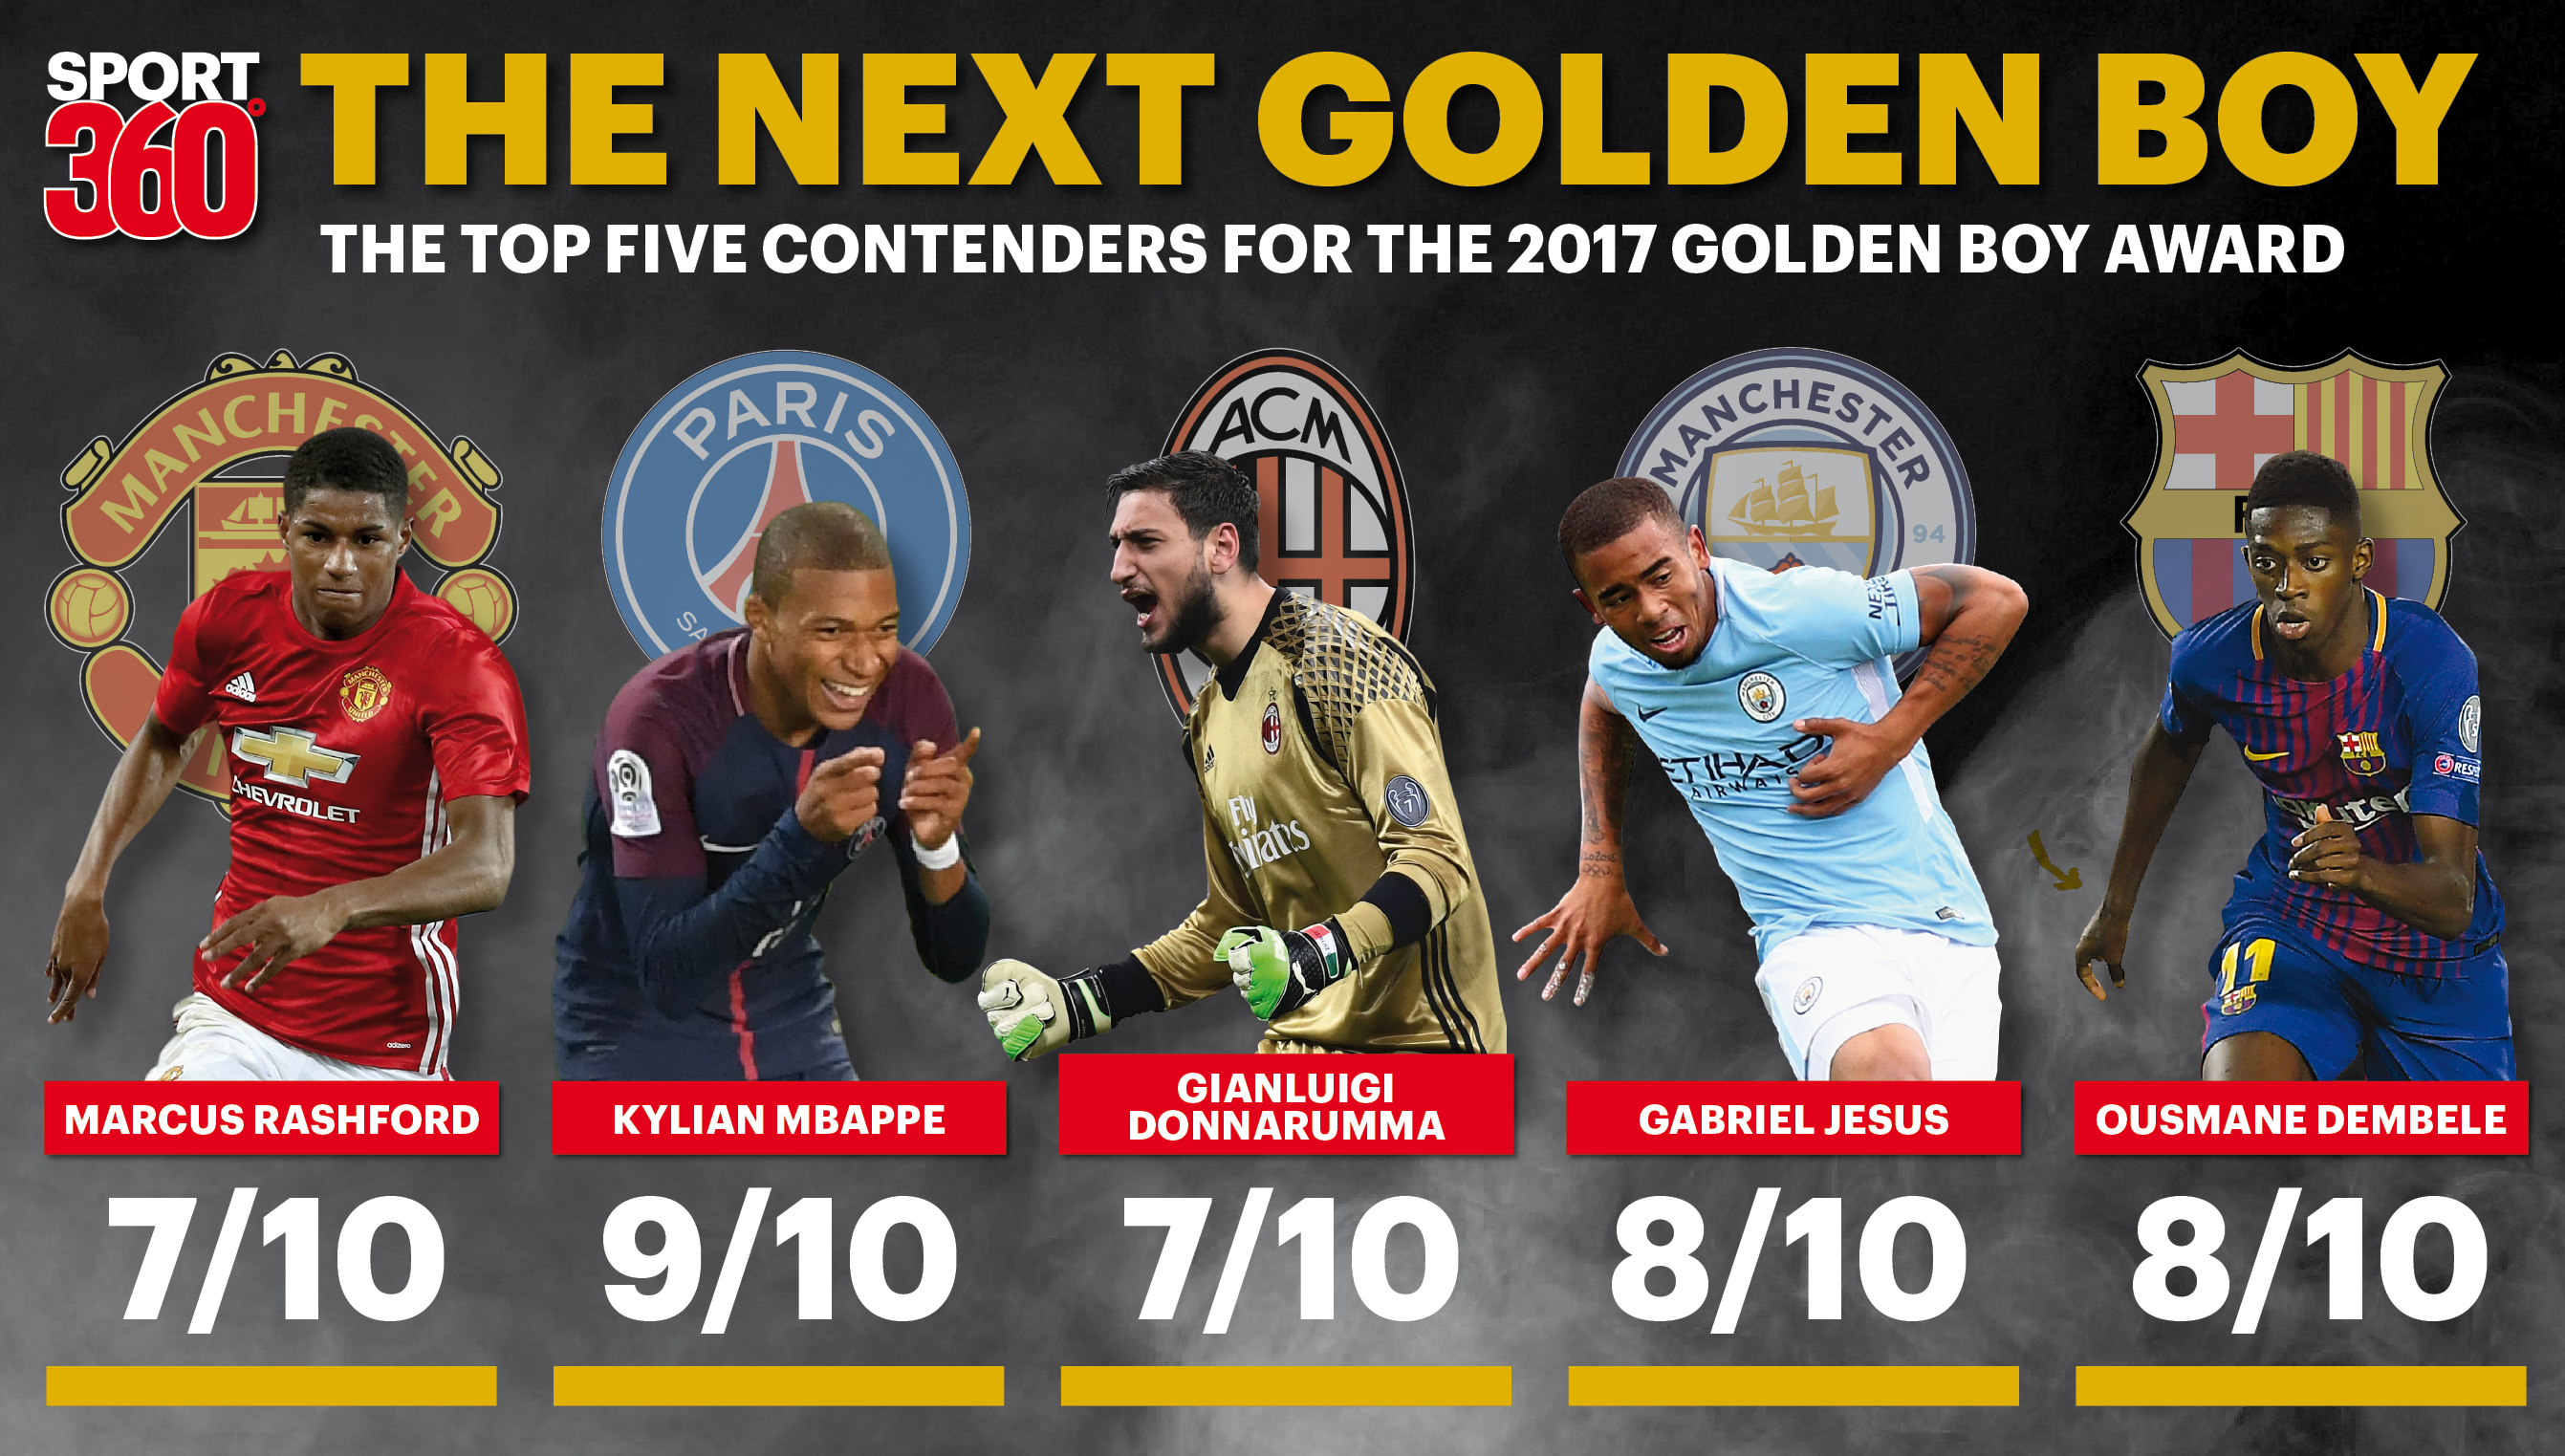 Manchester United S Marcus Rashford And Psg S Kylian Mbappe Top Five Golden Boy 2017 Contenders Sport360 News